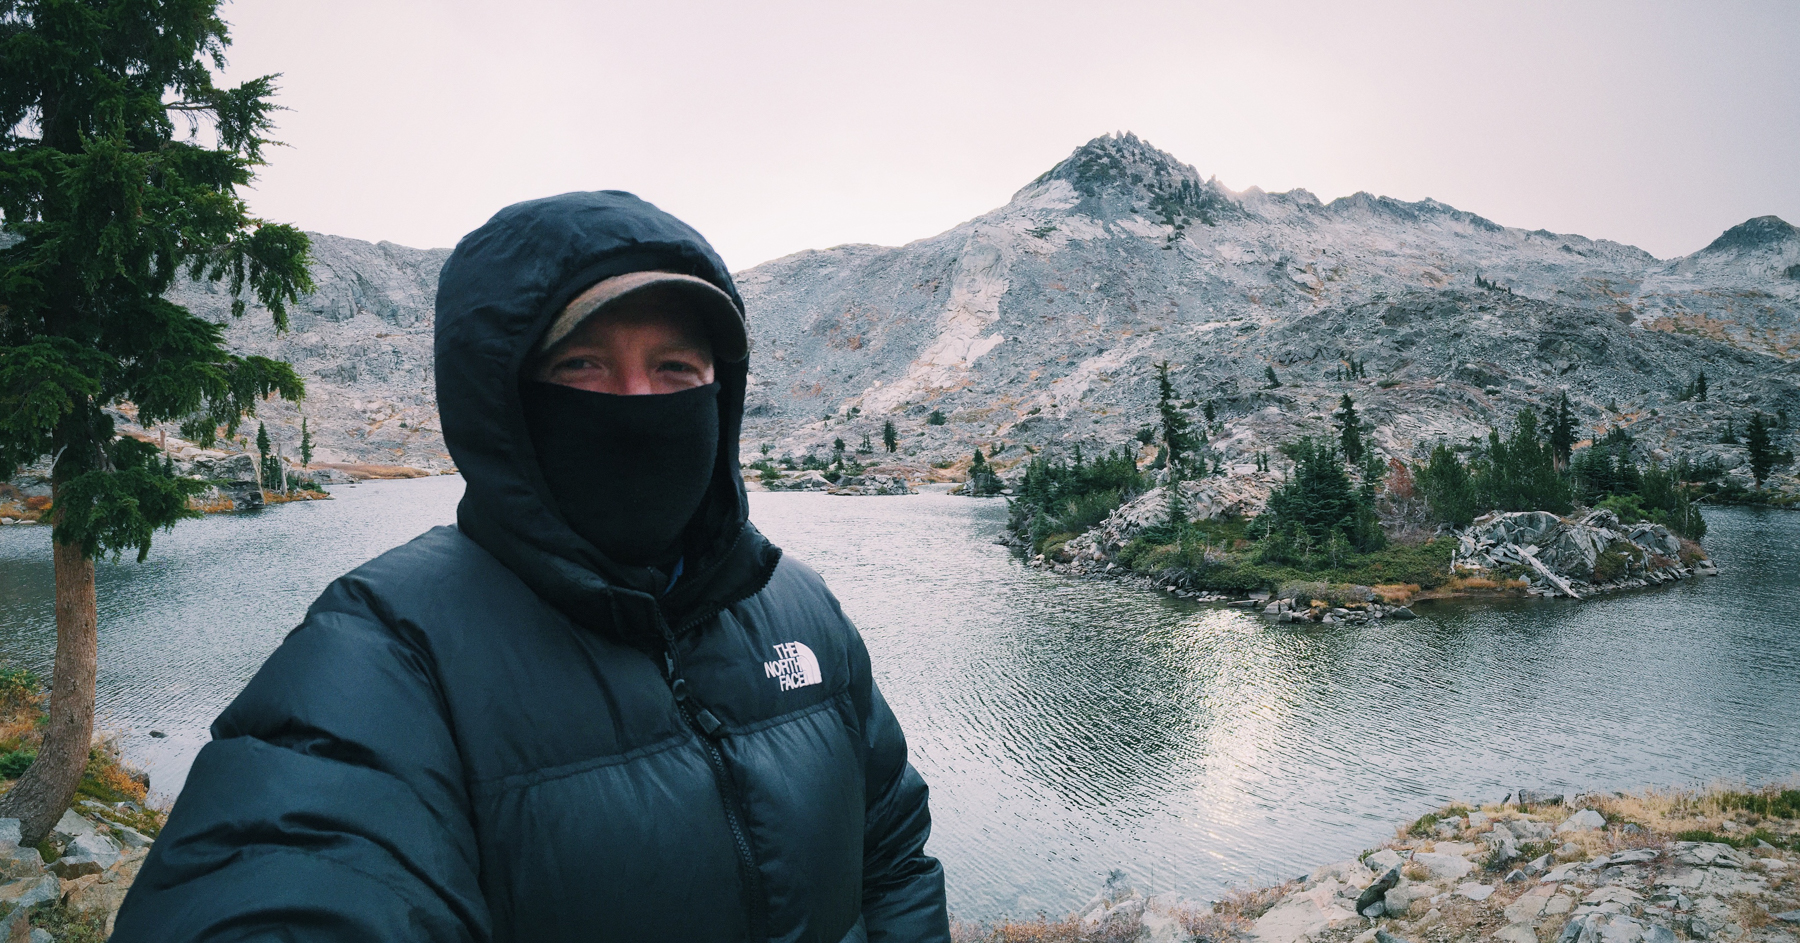 Chilly morning at Island Lake, in the Eldorado National Forest, CA